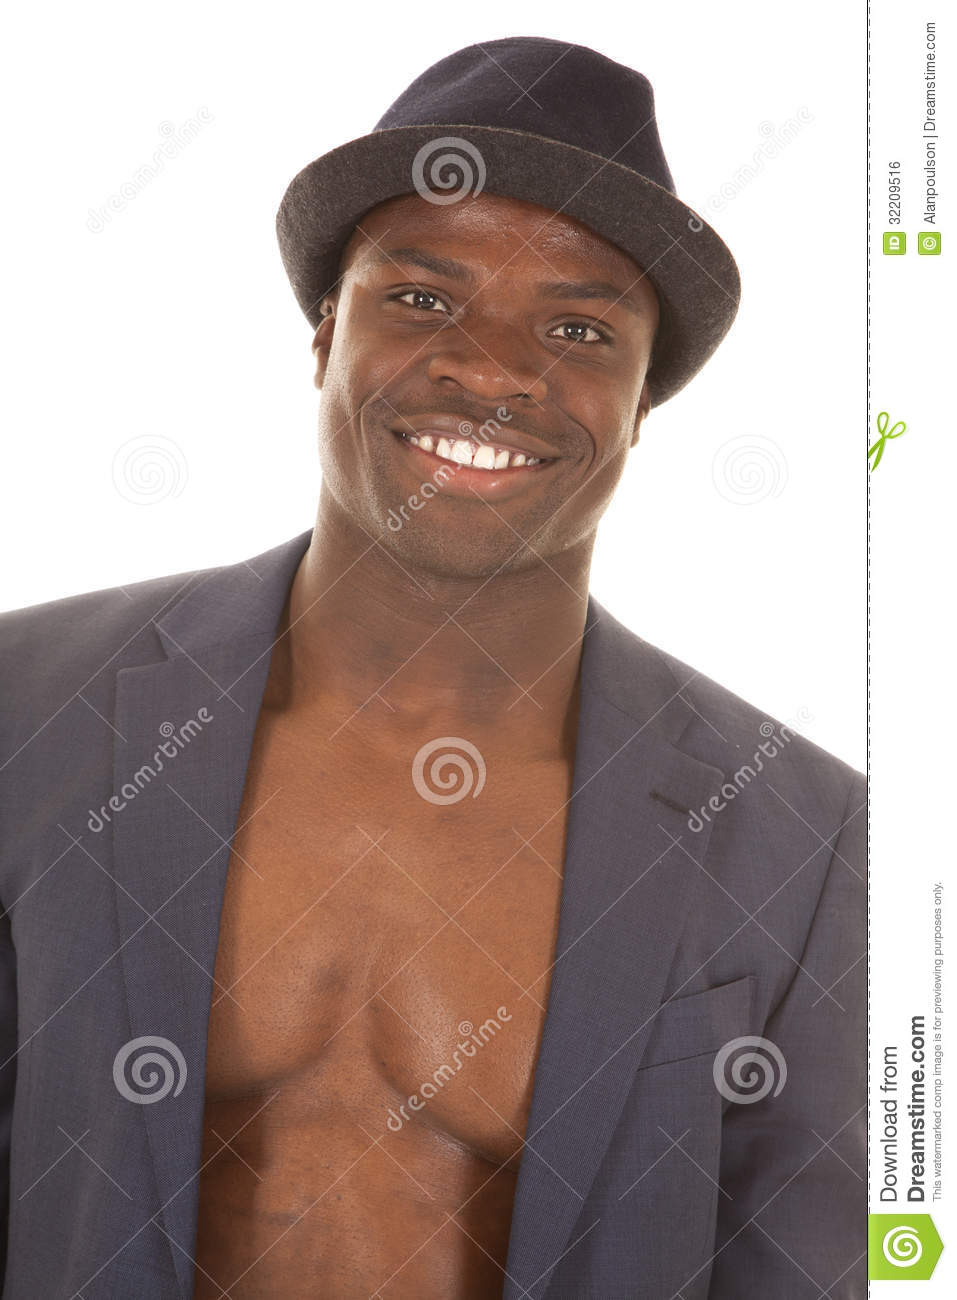 Man in suitcoat no shirt smile